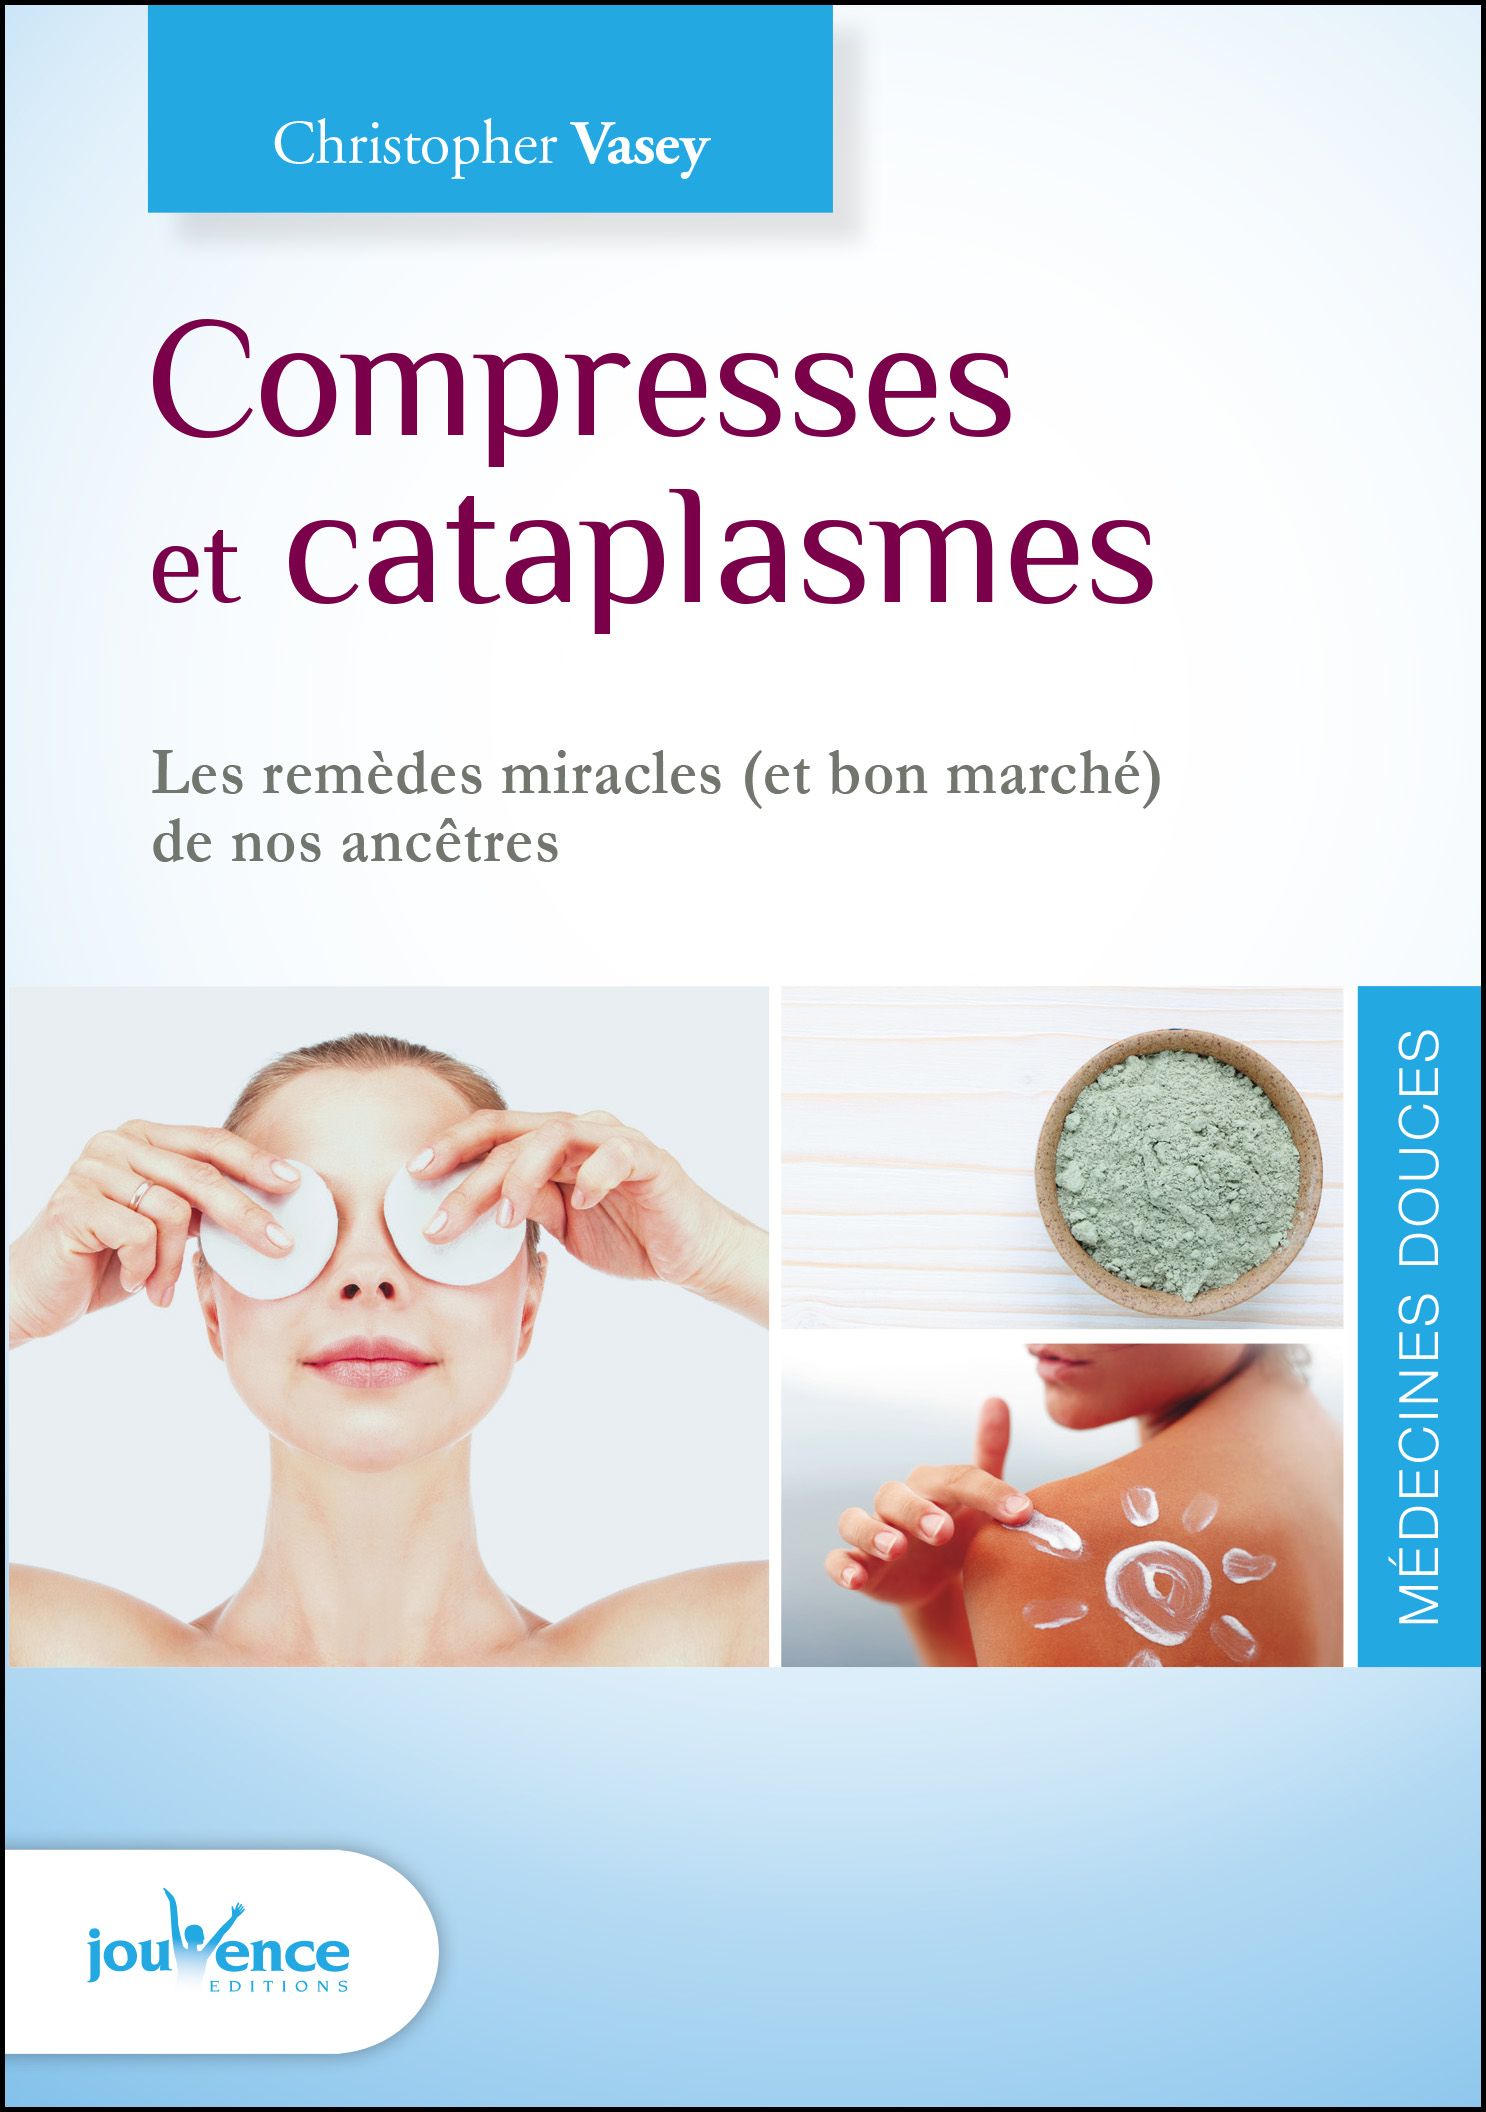 Compresses et cataplasmes